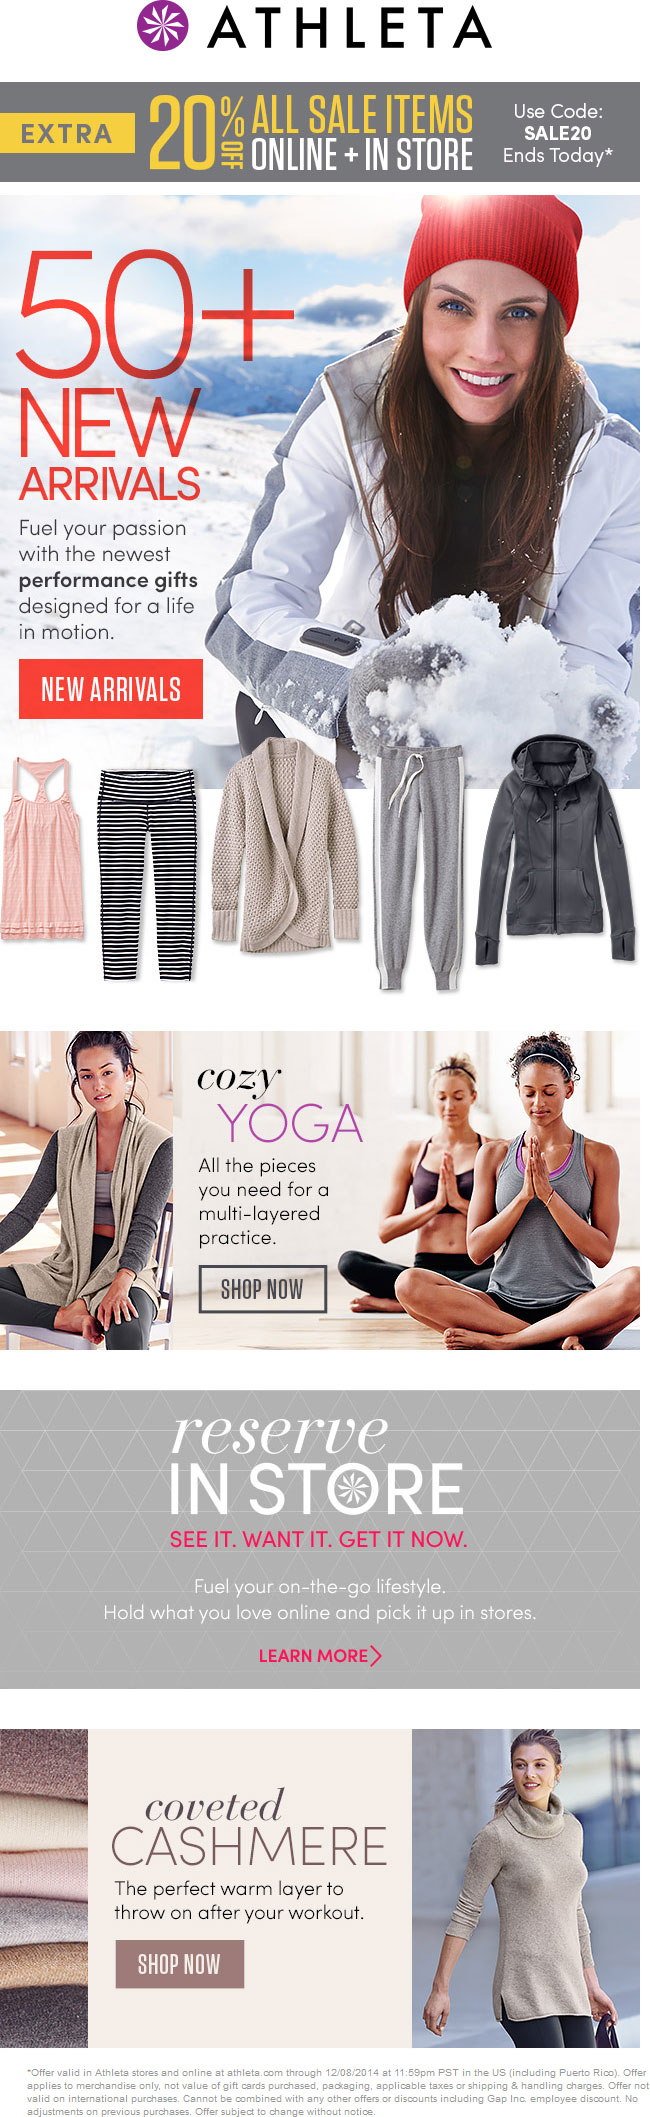 Athleta Coupon November 2018 Extra 20% off sale items today at Athleta, or online via promo code SALE20